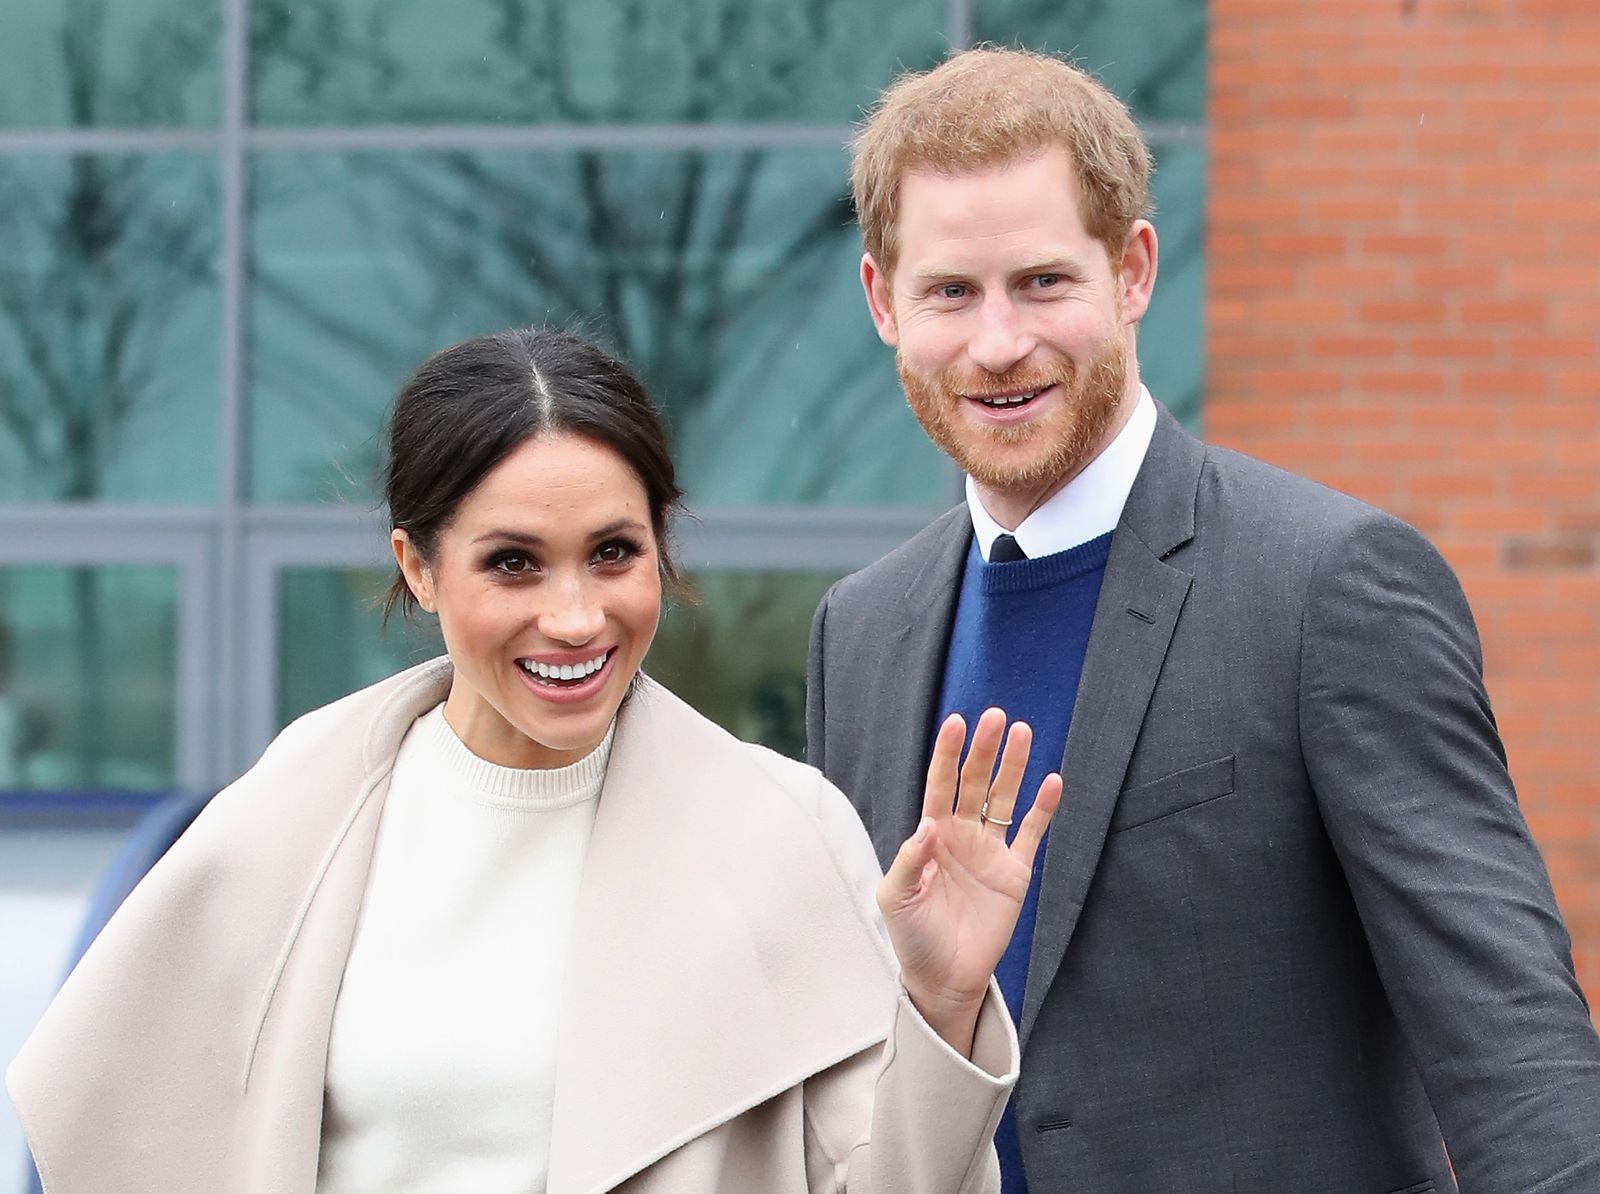 Prince Harry and Meghan Markle depart from Catalyst Inc science park on March 23, 2018 in Belfast, Nothern Ireland. | Photo: Getty Images